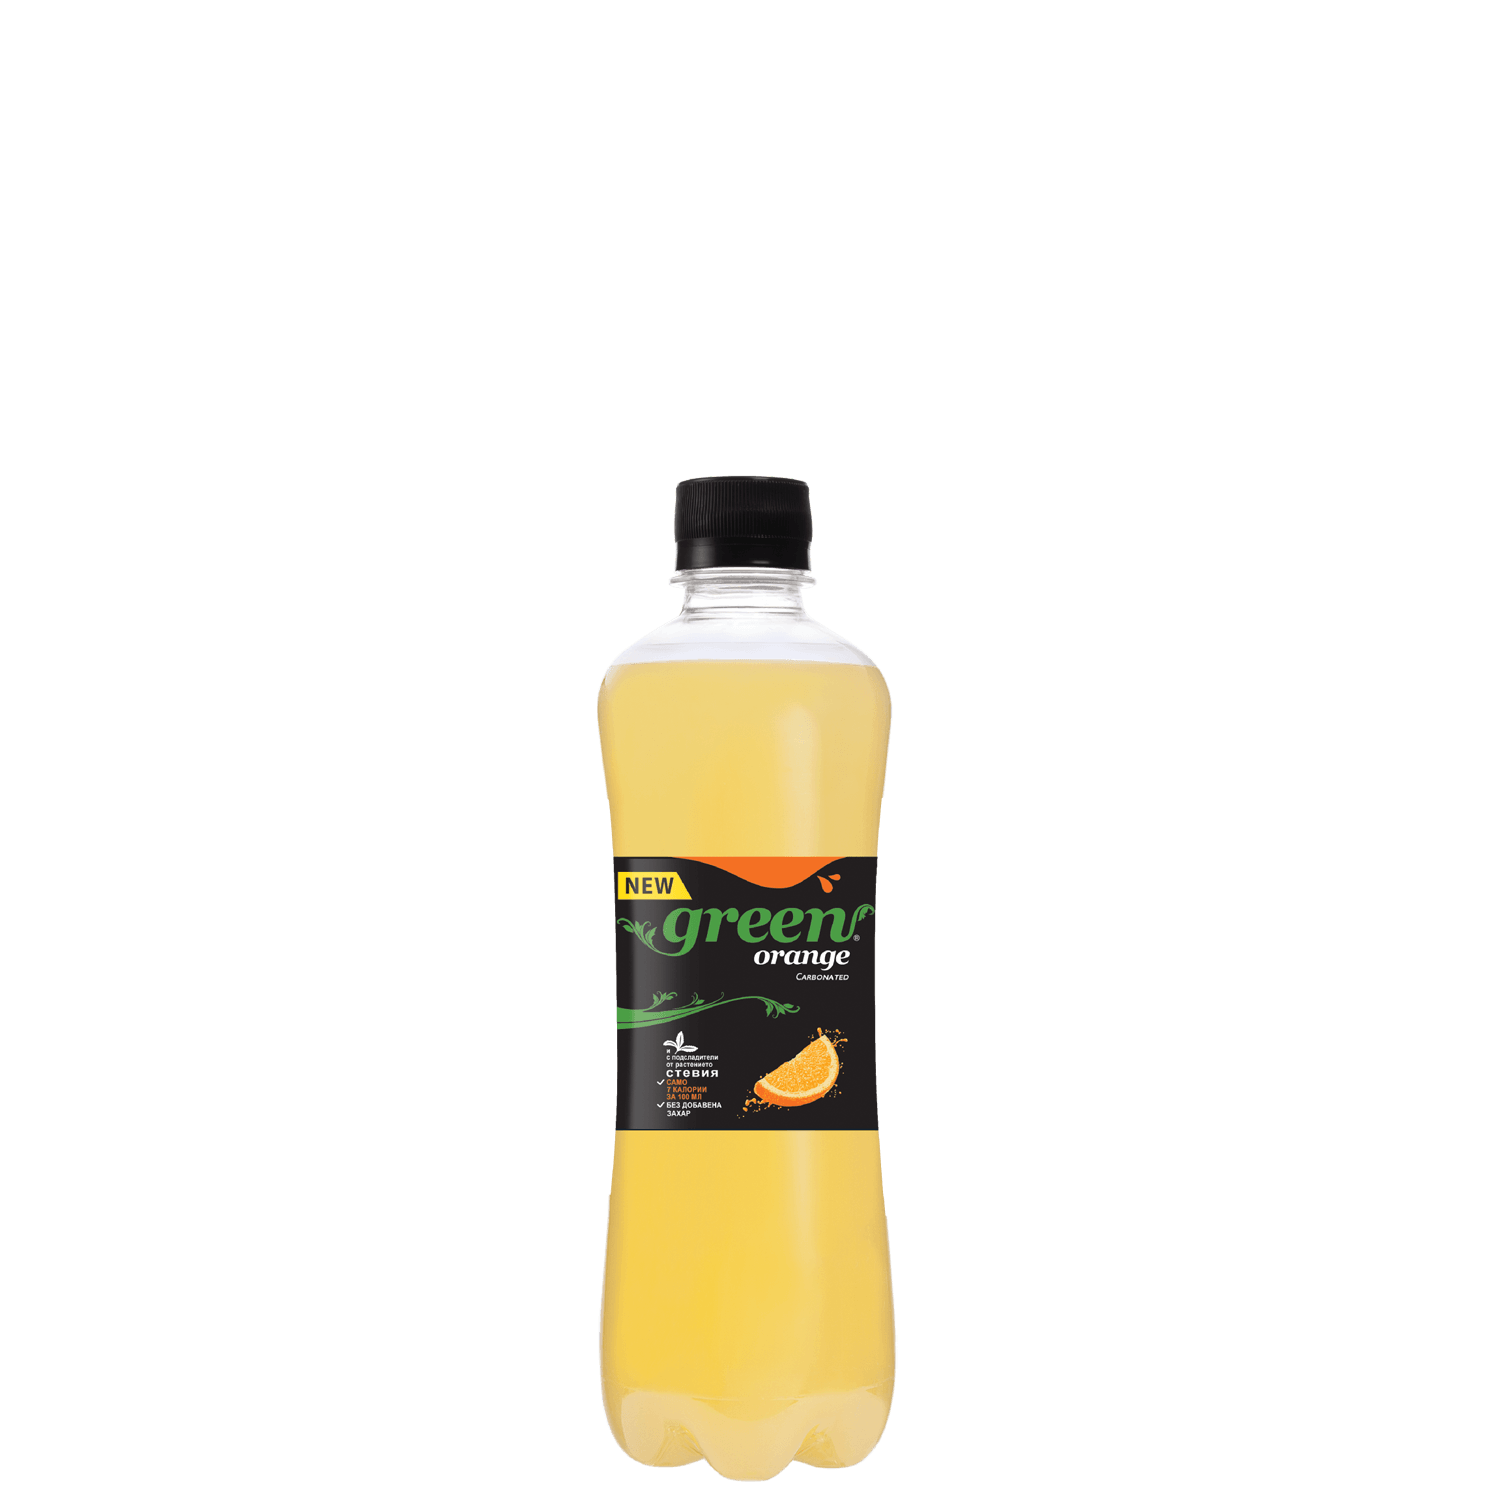 Green Orange - Bottle PET - 500ml